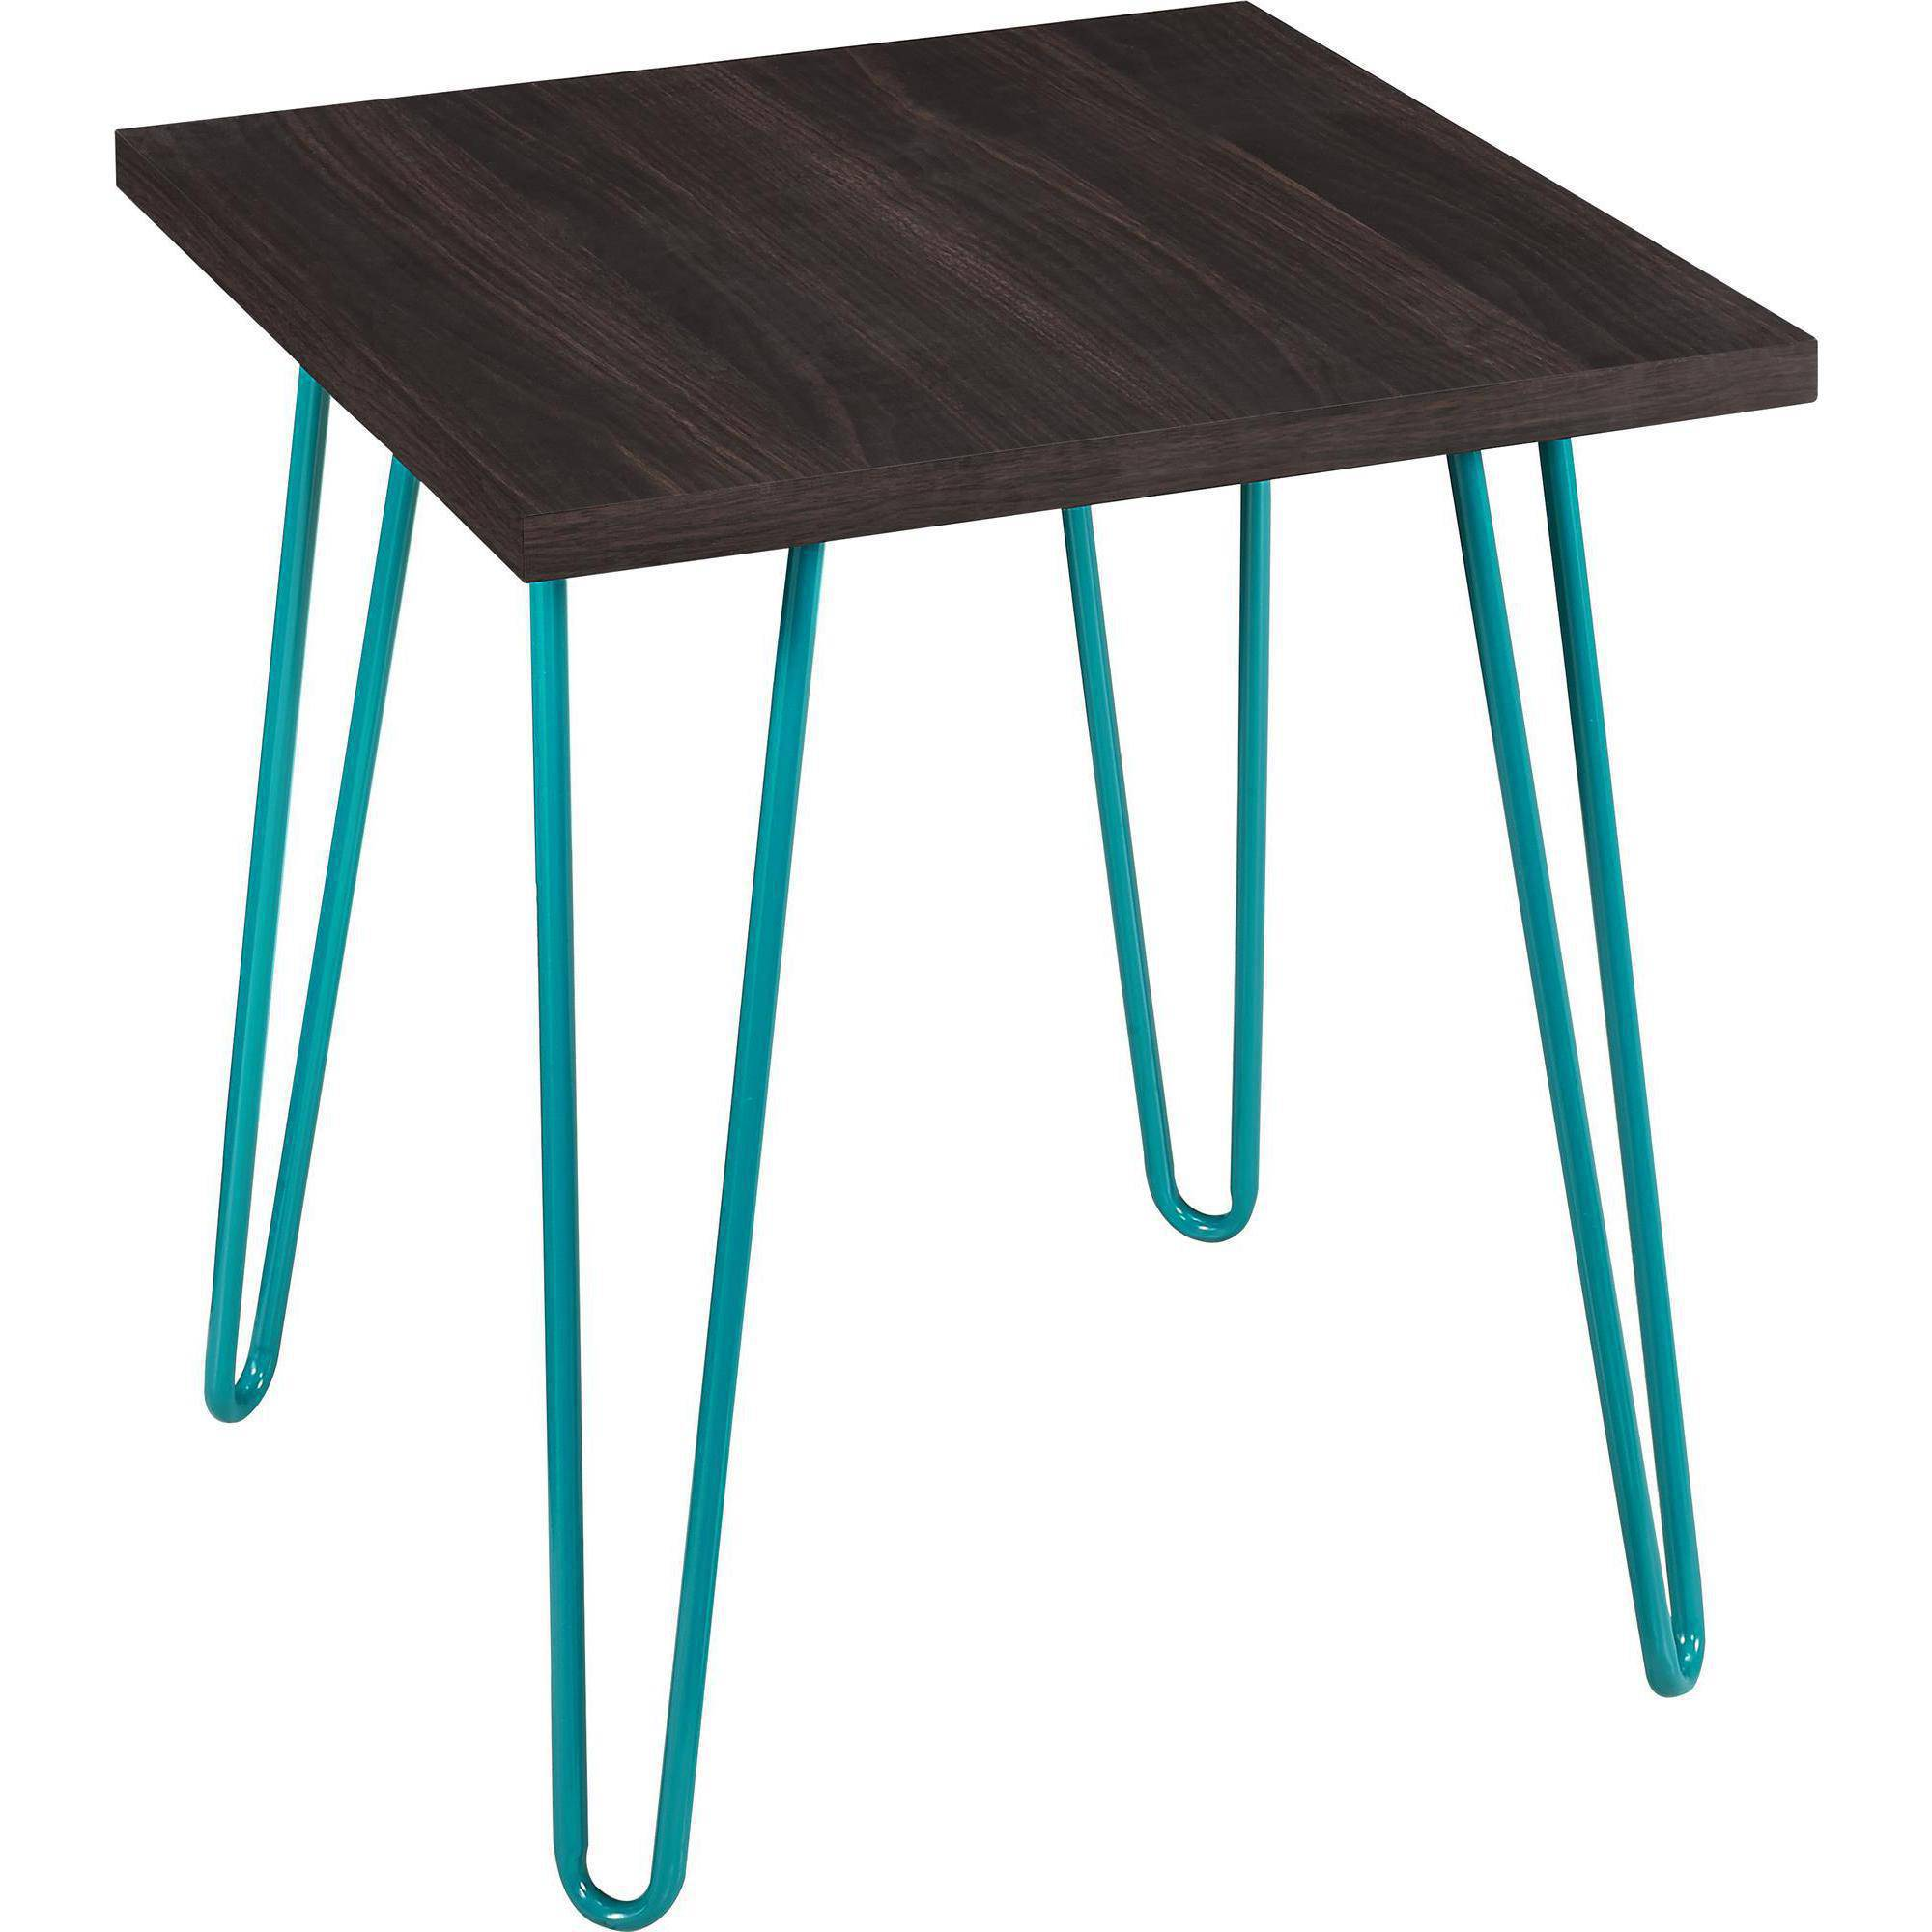 ameriwood home owen retro end table espresso teal small outdoor furniture miami patio umbrella big lots beds long narrow console gold plastic tablecloth queen anne chair legs